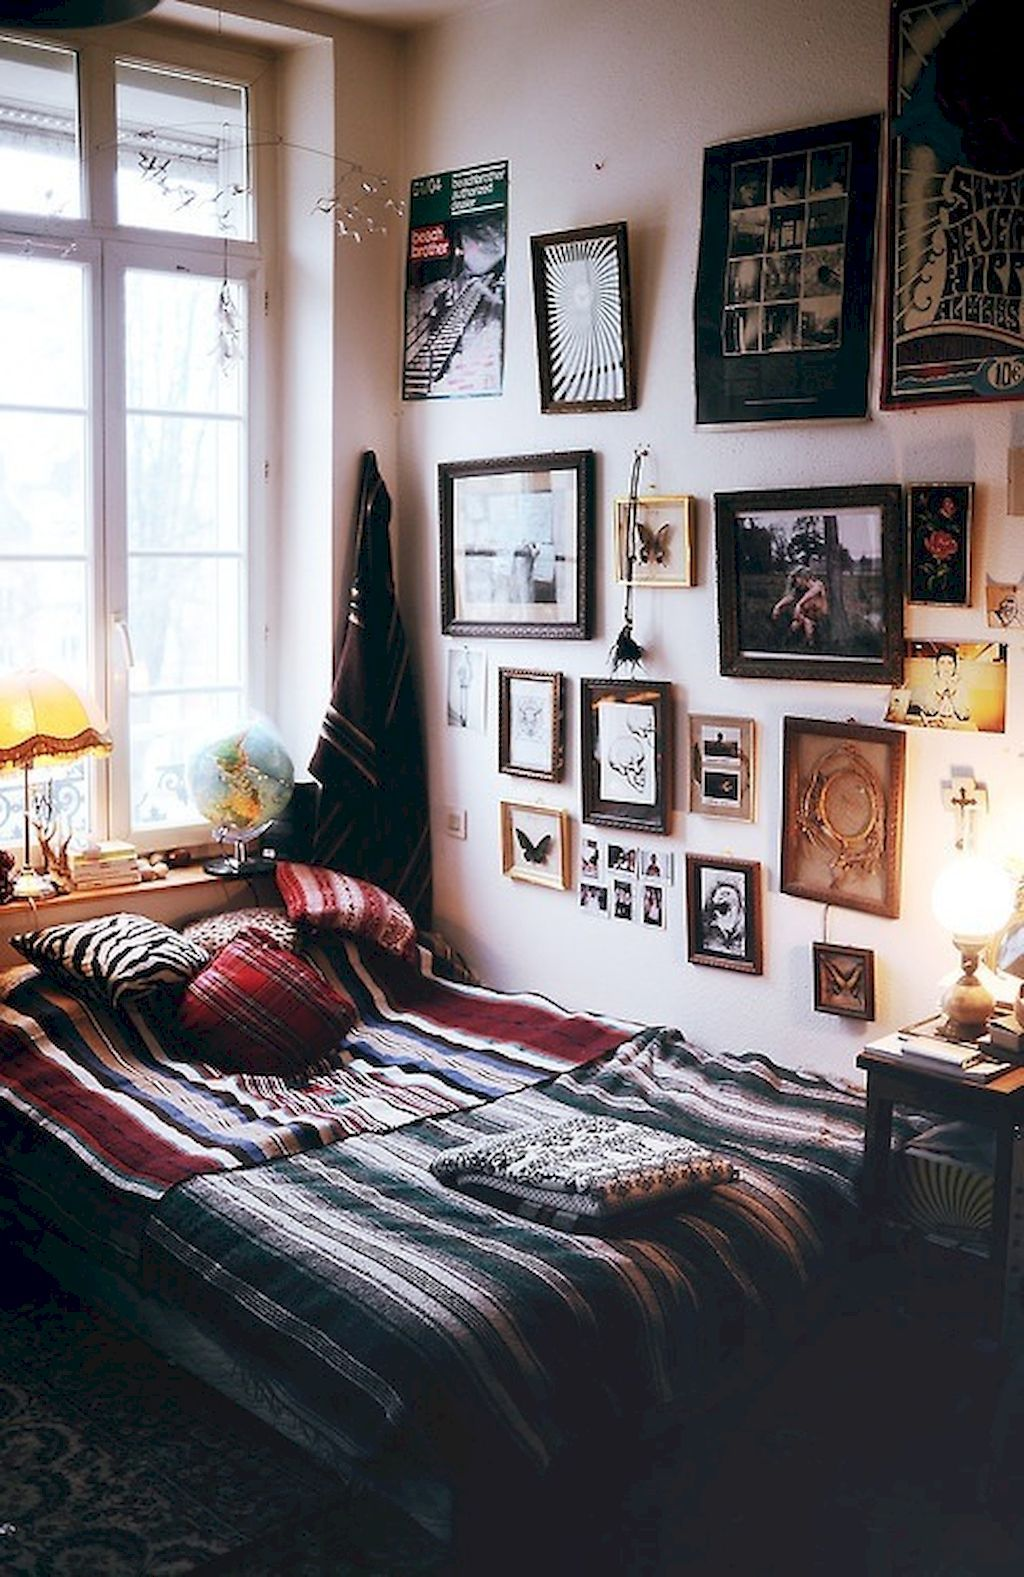 66 Cute DIY Hipster Bedroom Decorations Ideas